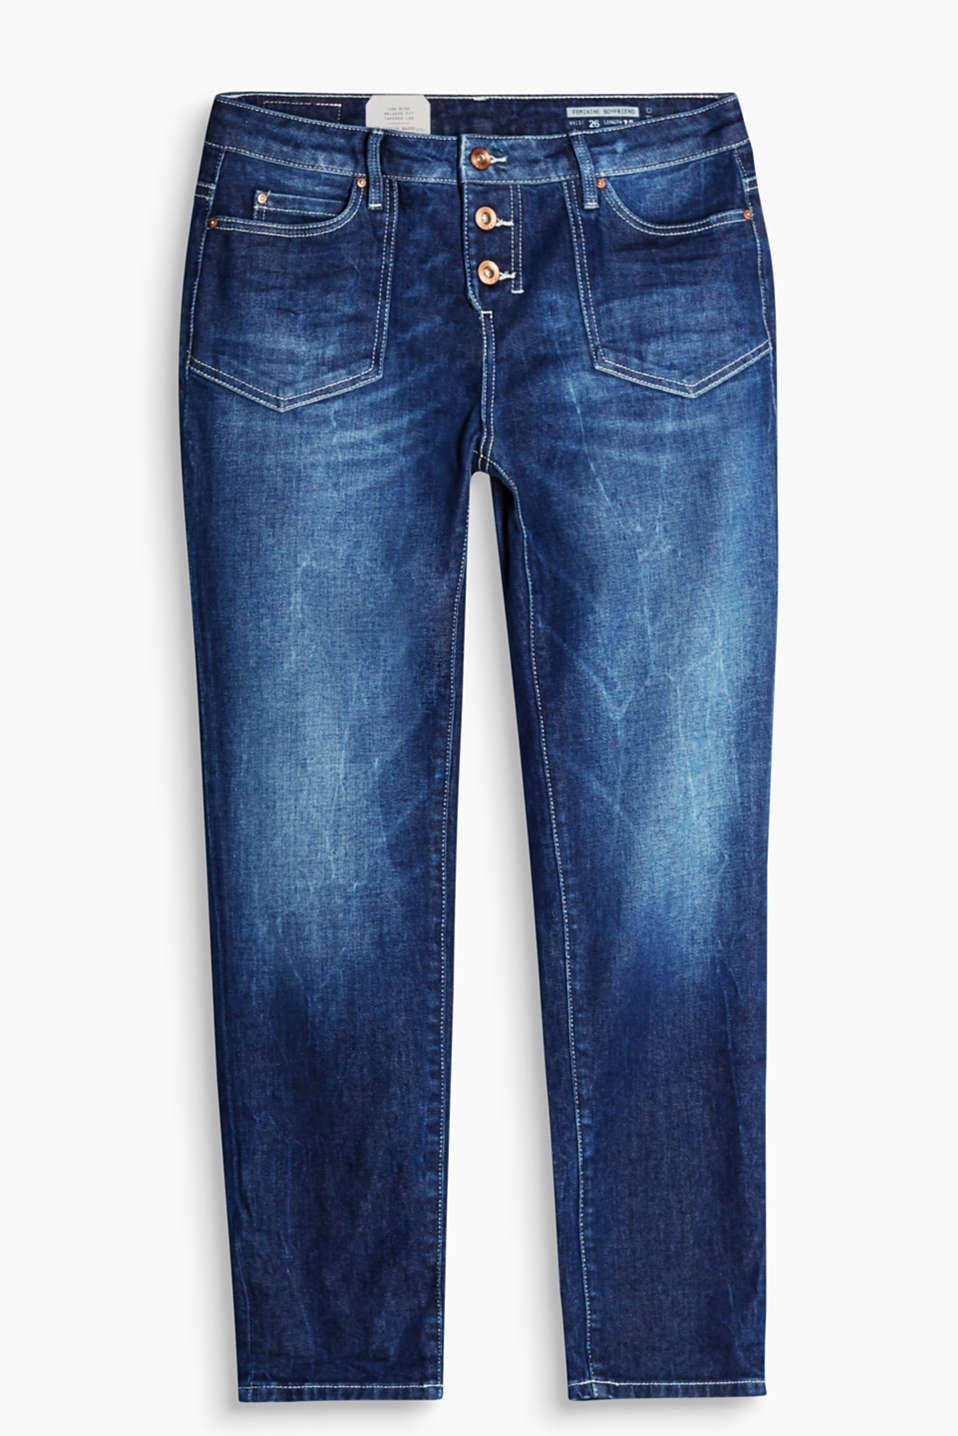 Cropped cotton jeans containing a high percentage of elastane with patch pockets and a button fly